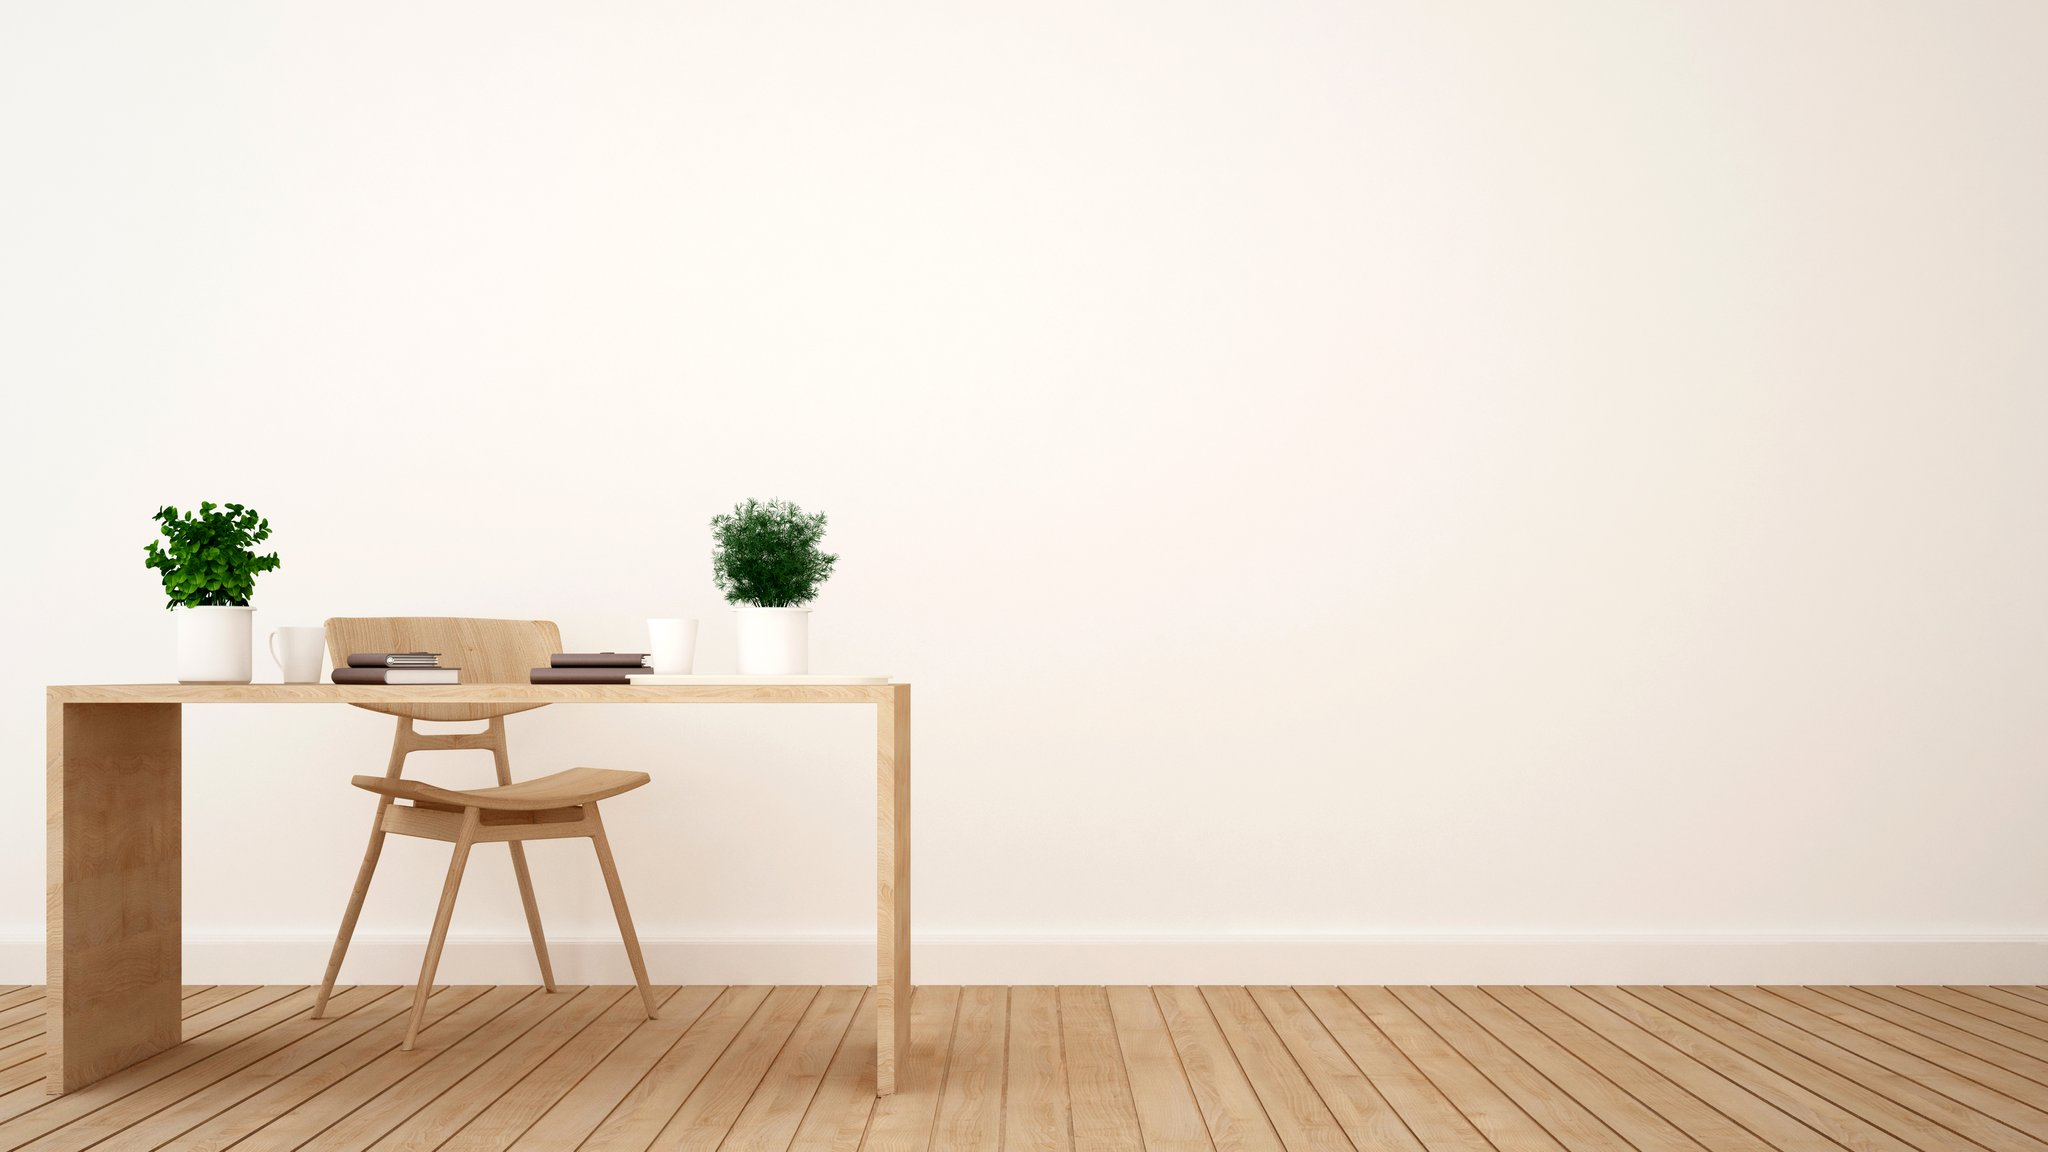 Millennials and the Minimalism Trend